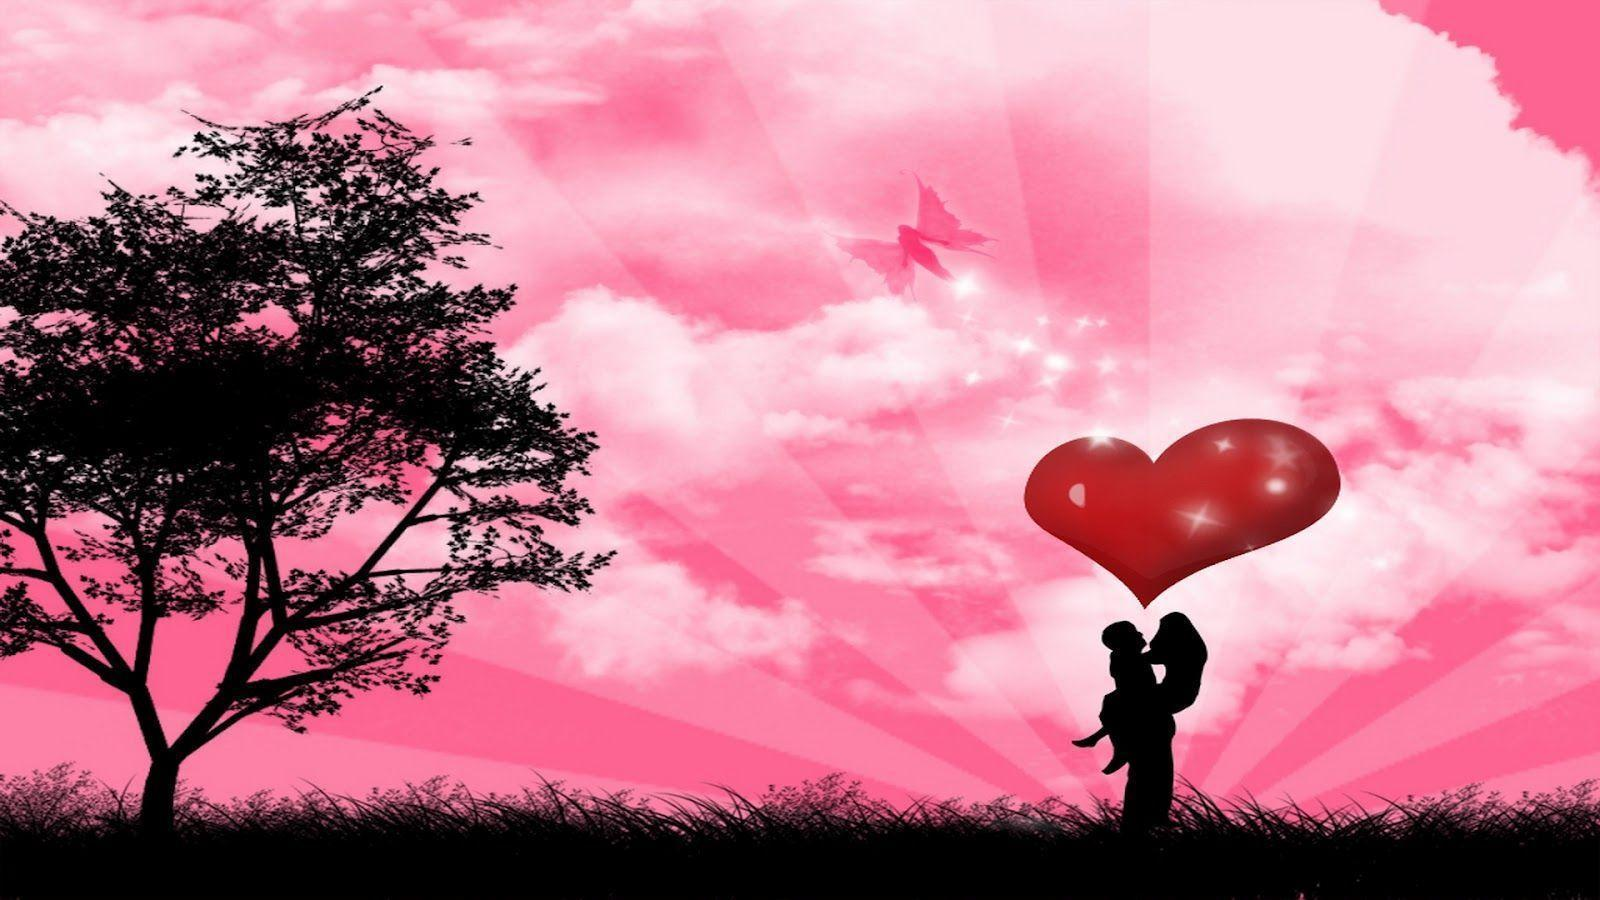 Romantic Love Wallpaper Images : Love Romantic Wallpapers - Wallpaper cave